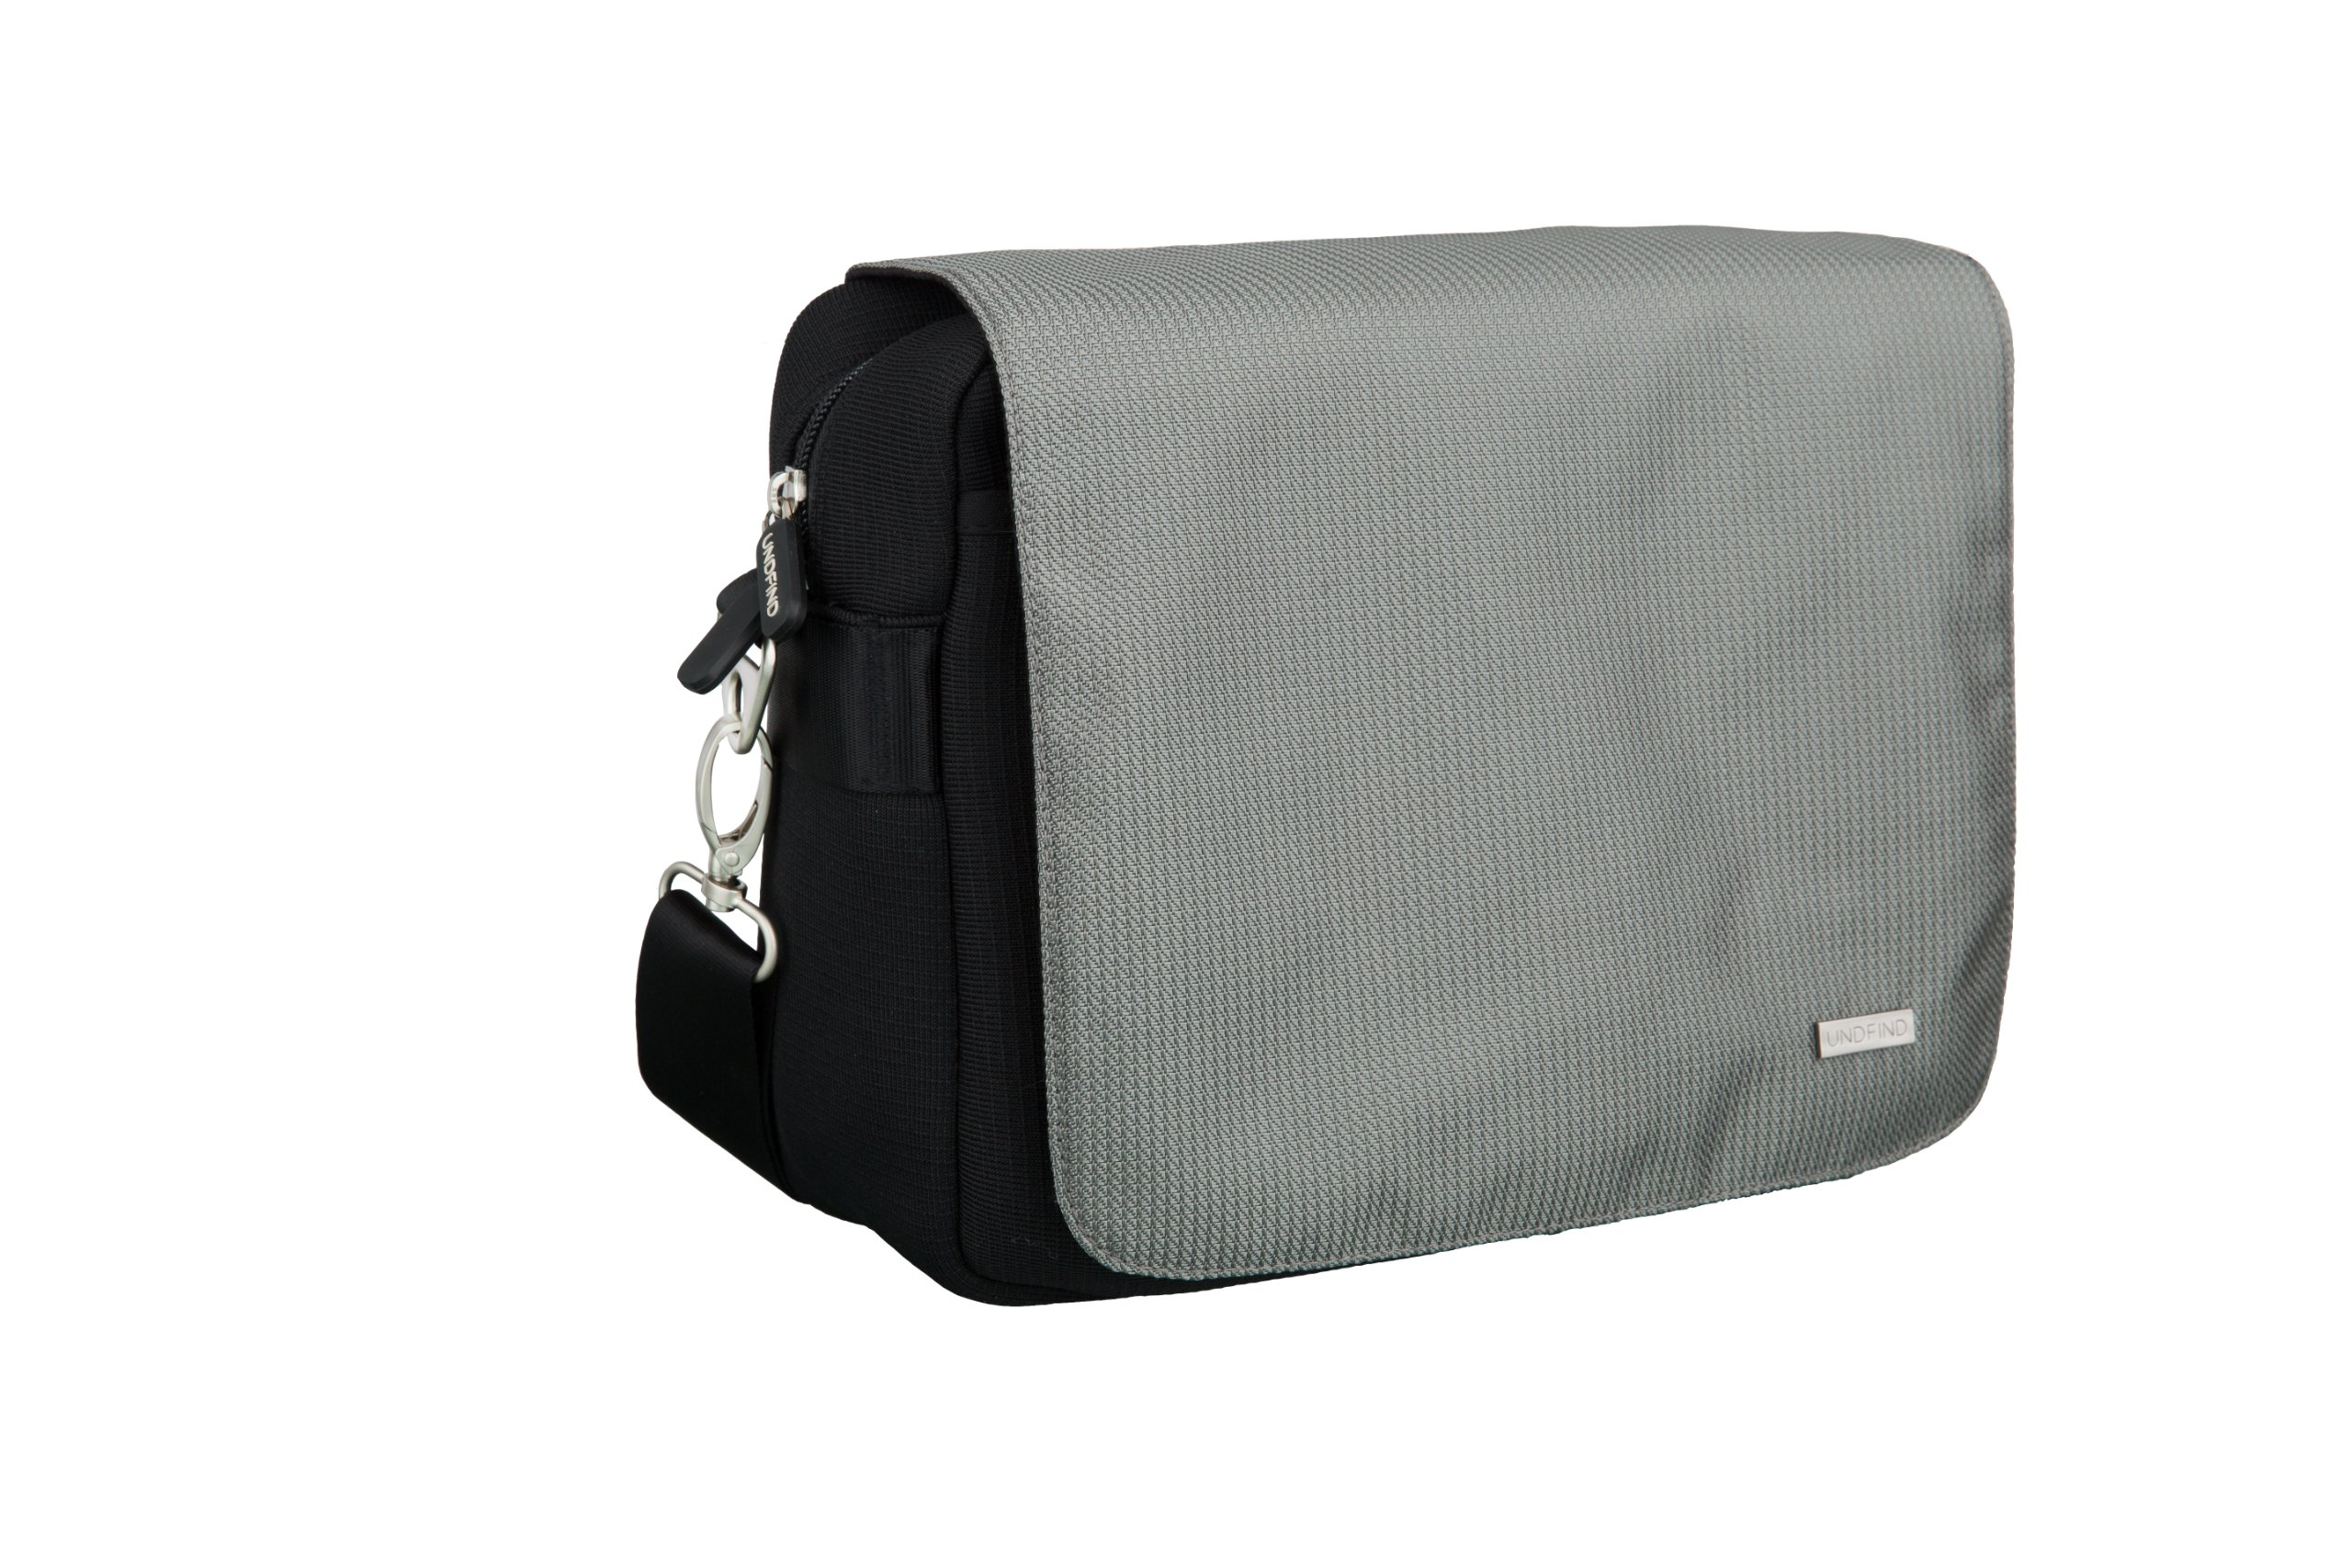 Undfind OB10-0005 10-Inch One Bag Camera and Laptop Bag with Cover and Photo Insert (Ballistic Nylon)